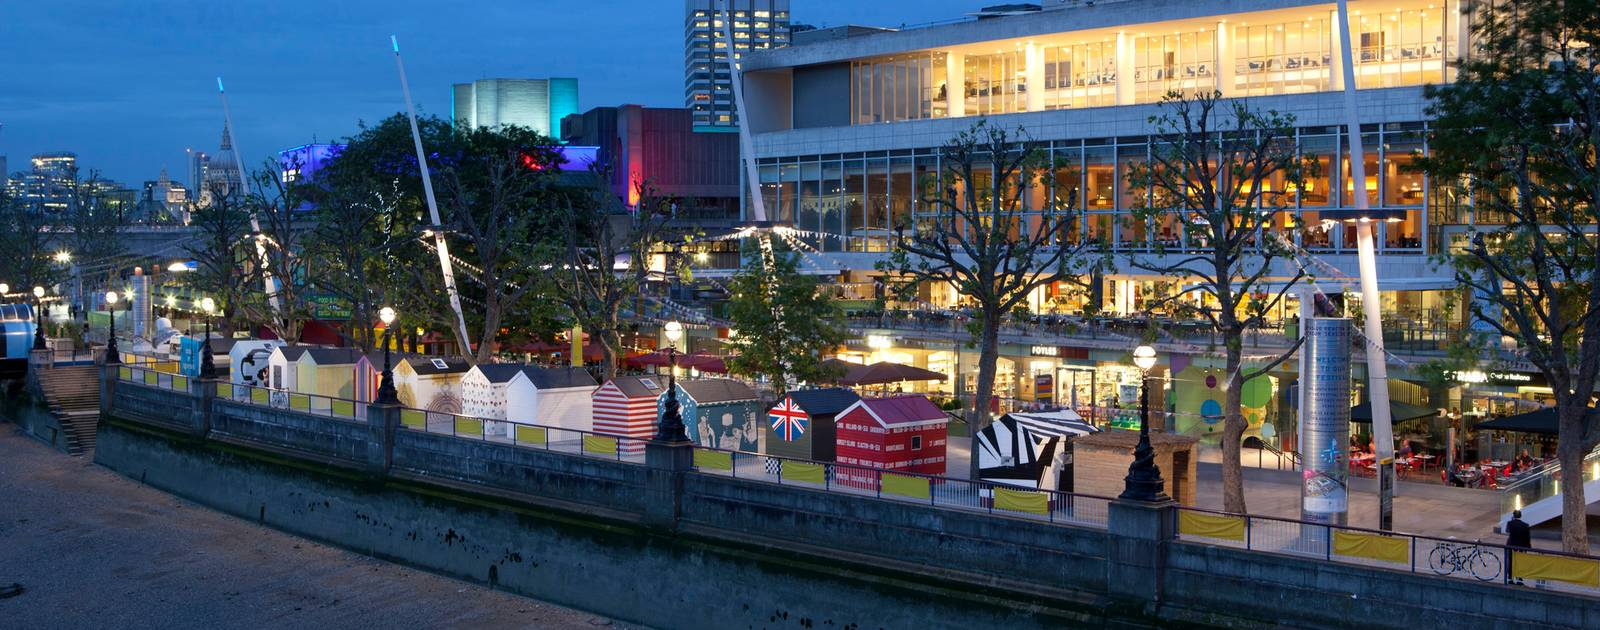 Evening view of the Royal Festival Hall at the Southbank Centre